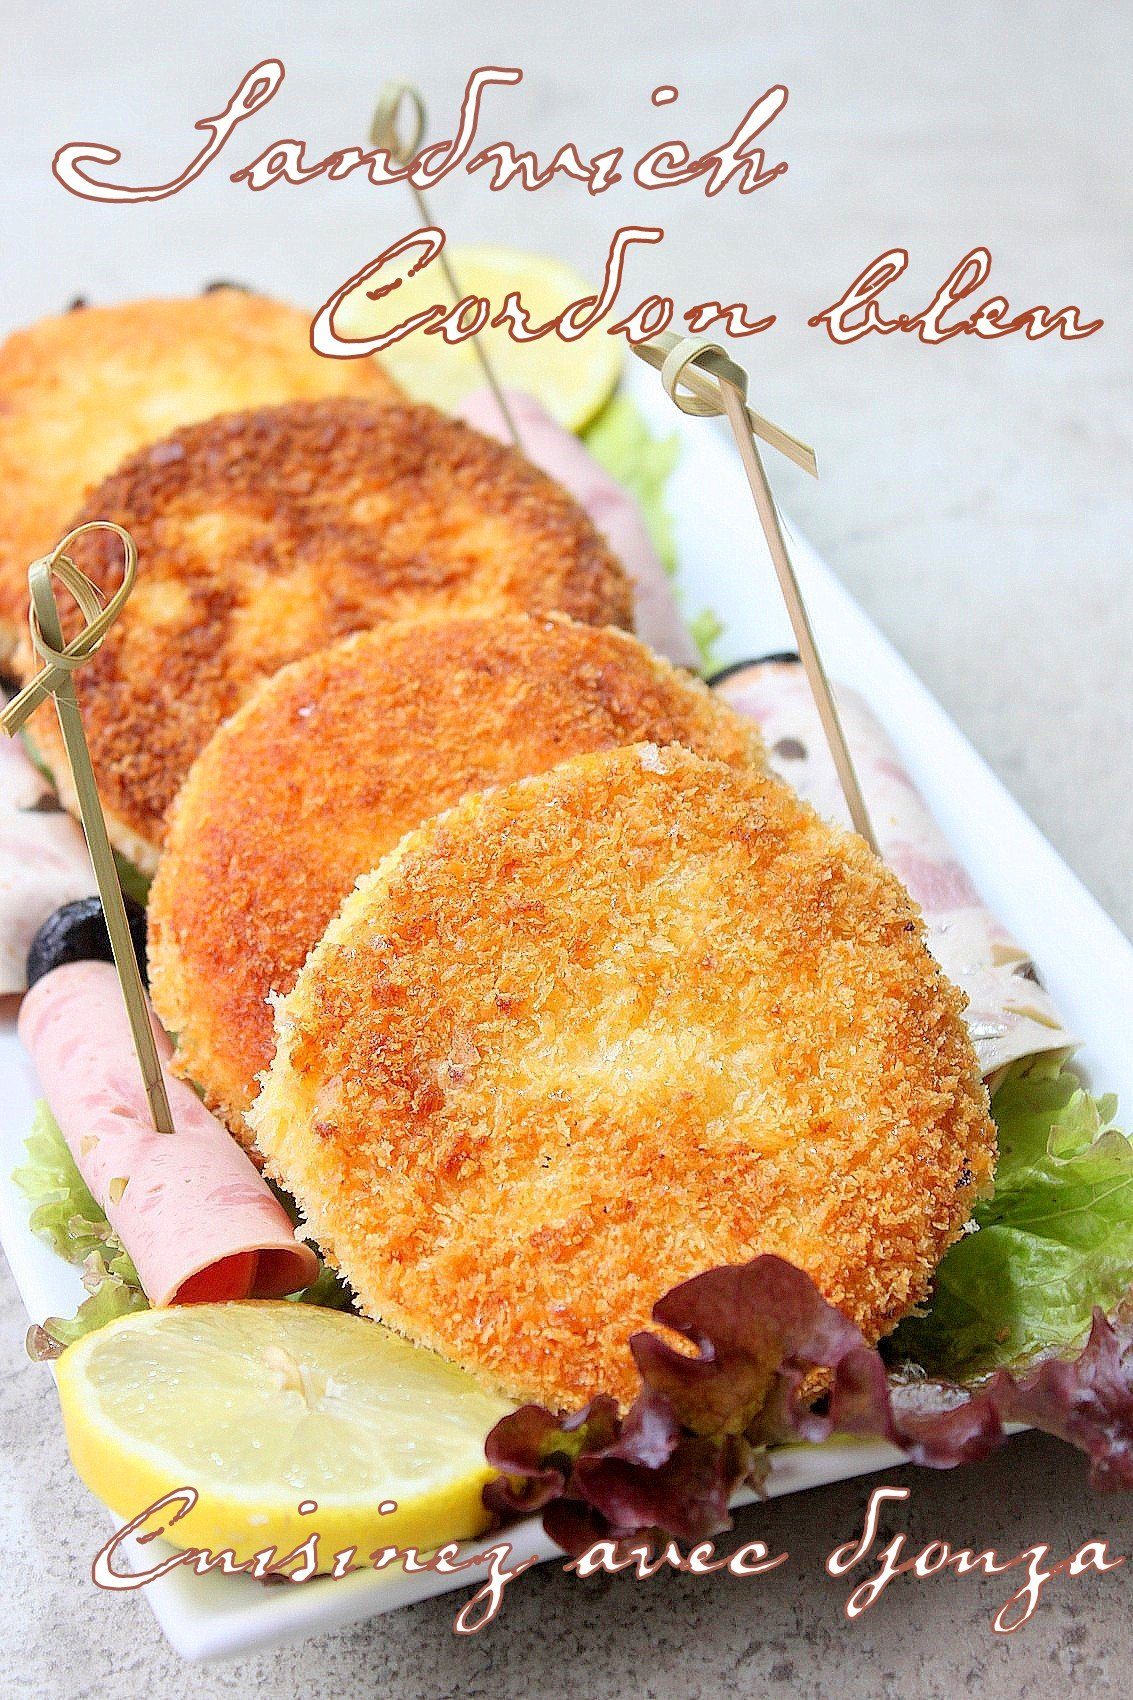 Sandwichs pain de mie pan fa on cordon bleu blogs de cuisine - Recette sandwich pain de mie ...